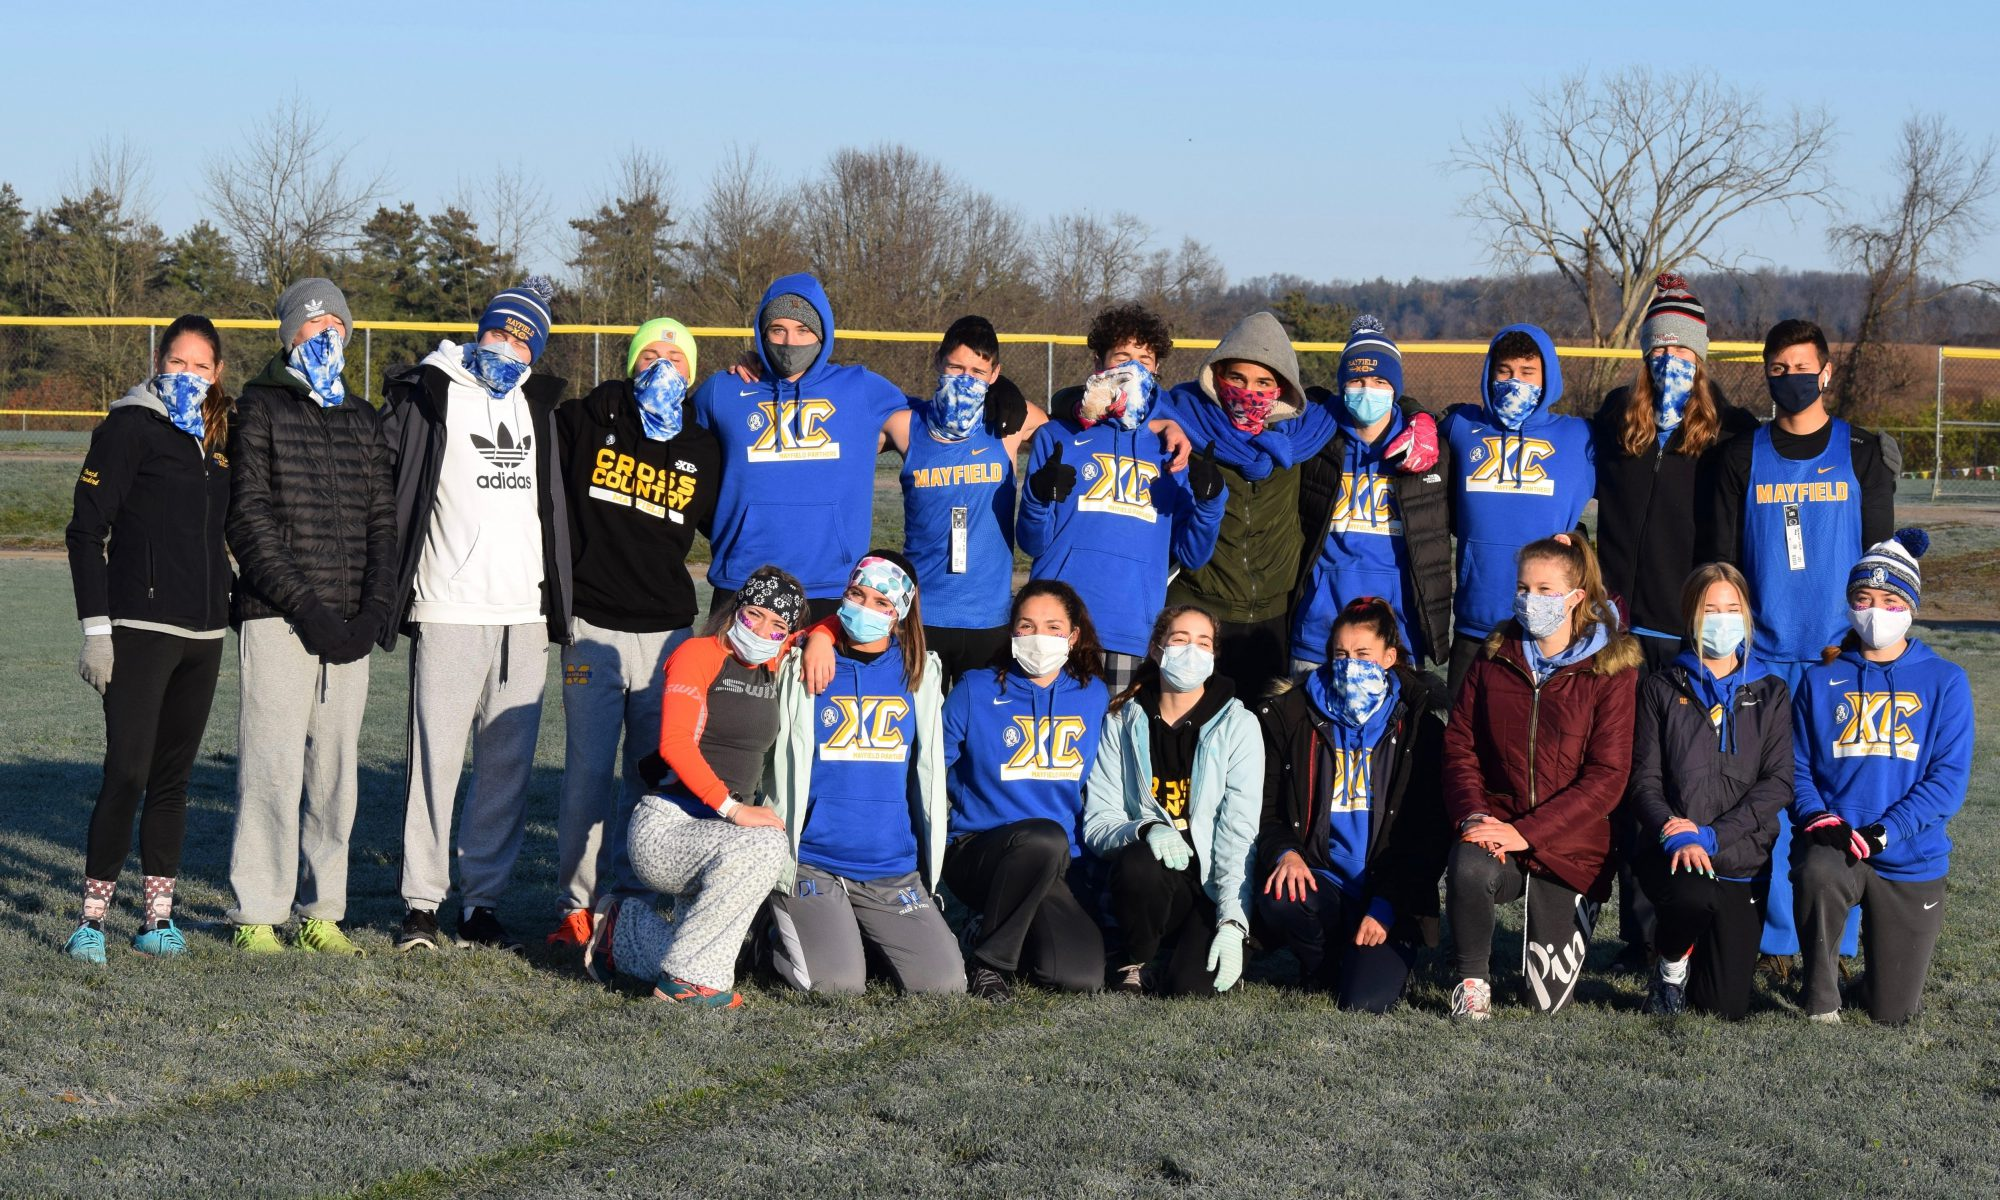 Group photo of Mayfield cross country team